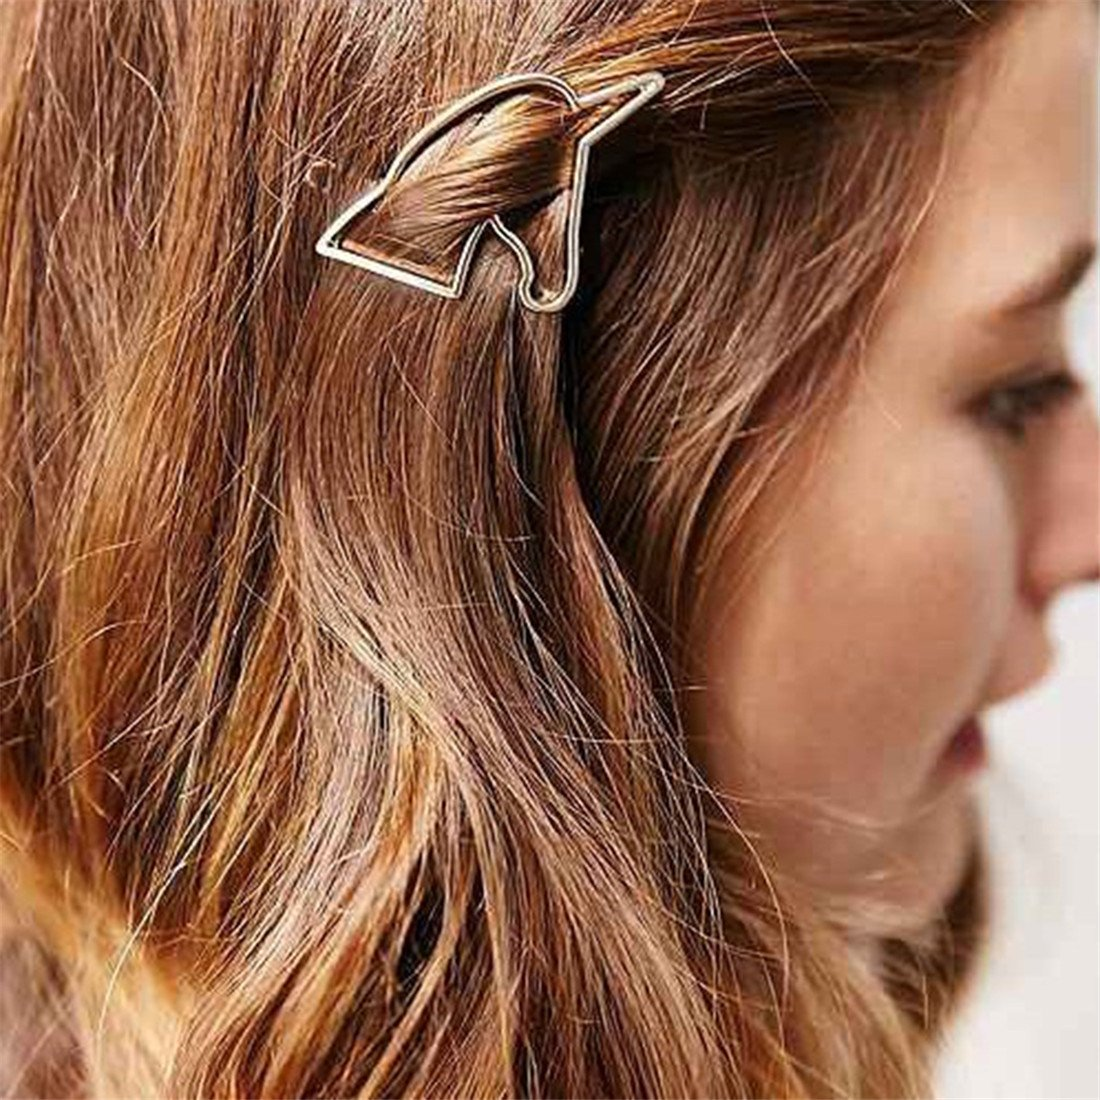 VWH 1pcs Women Gold Unicorn Hollow Triangle Geometric Metal Hairpin Hair Clip Clamps Accessories Barrettes